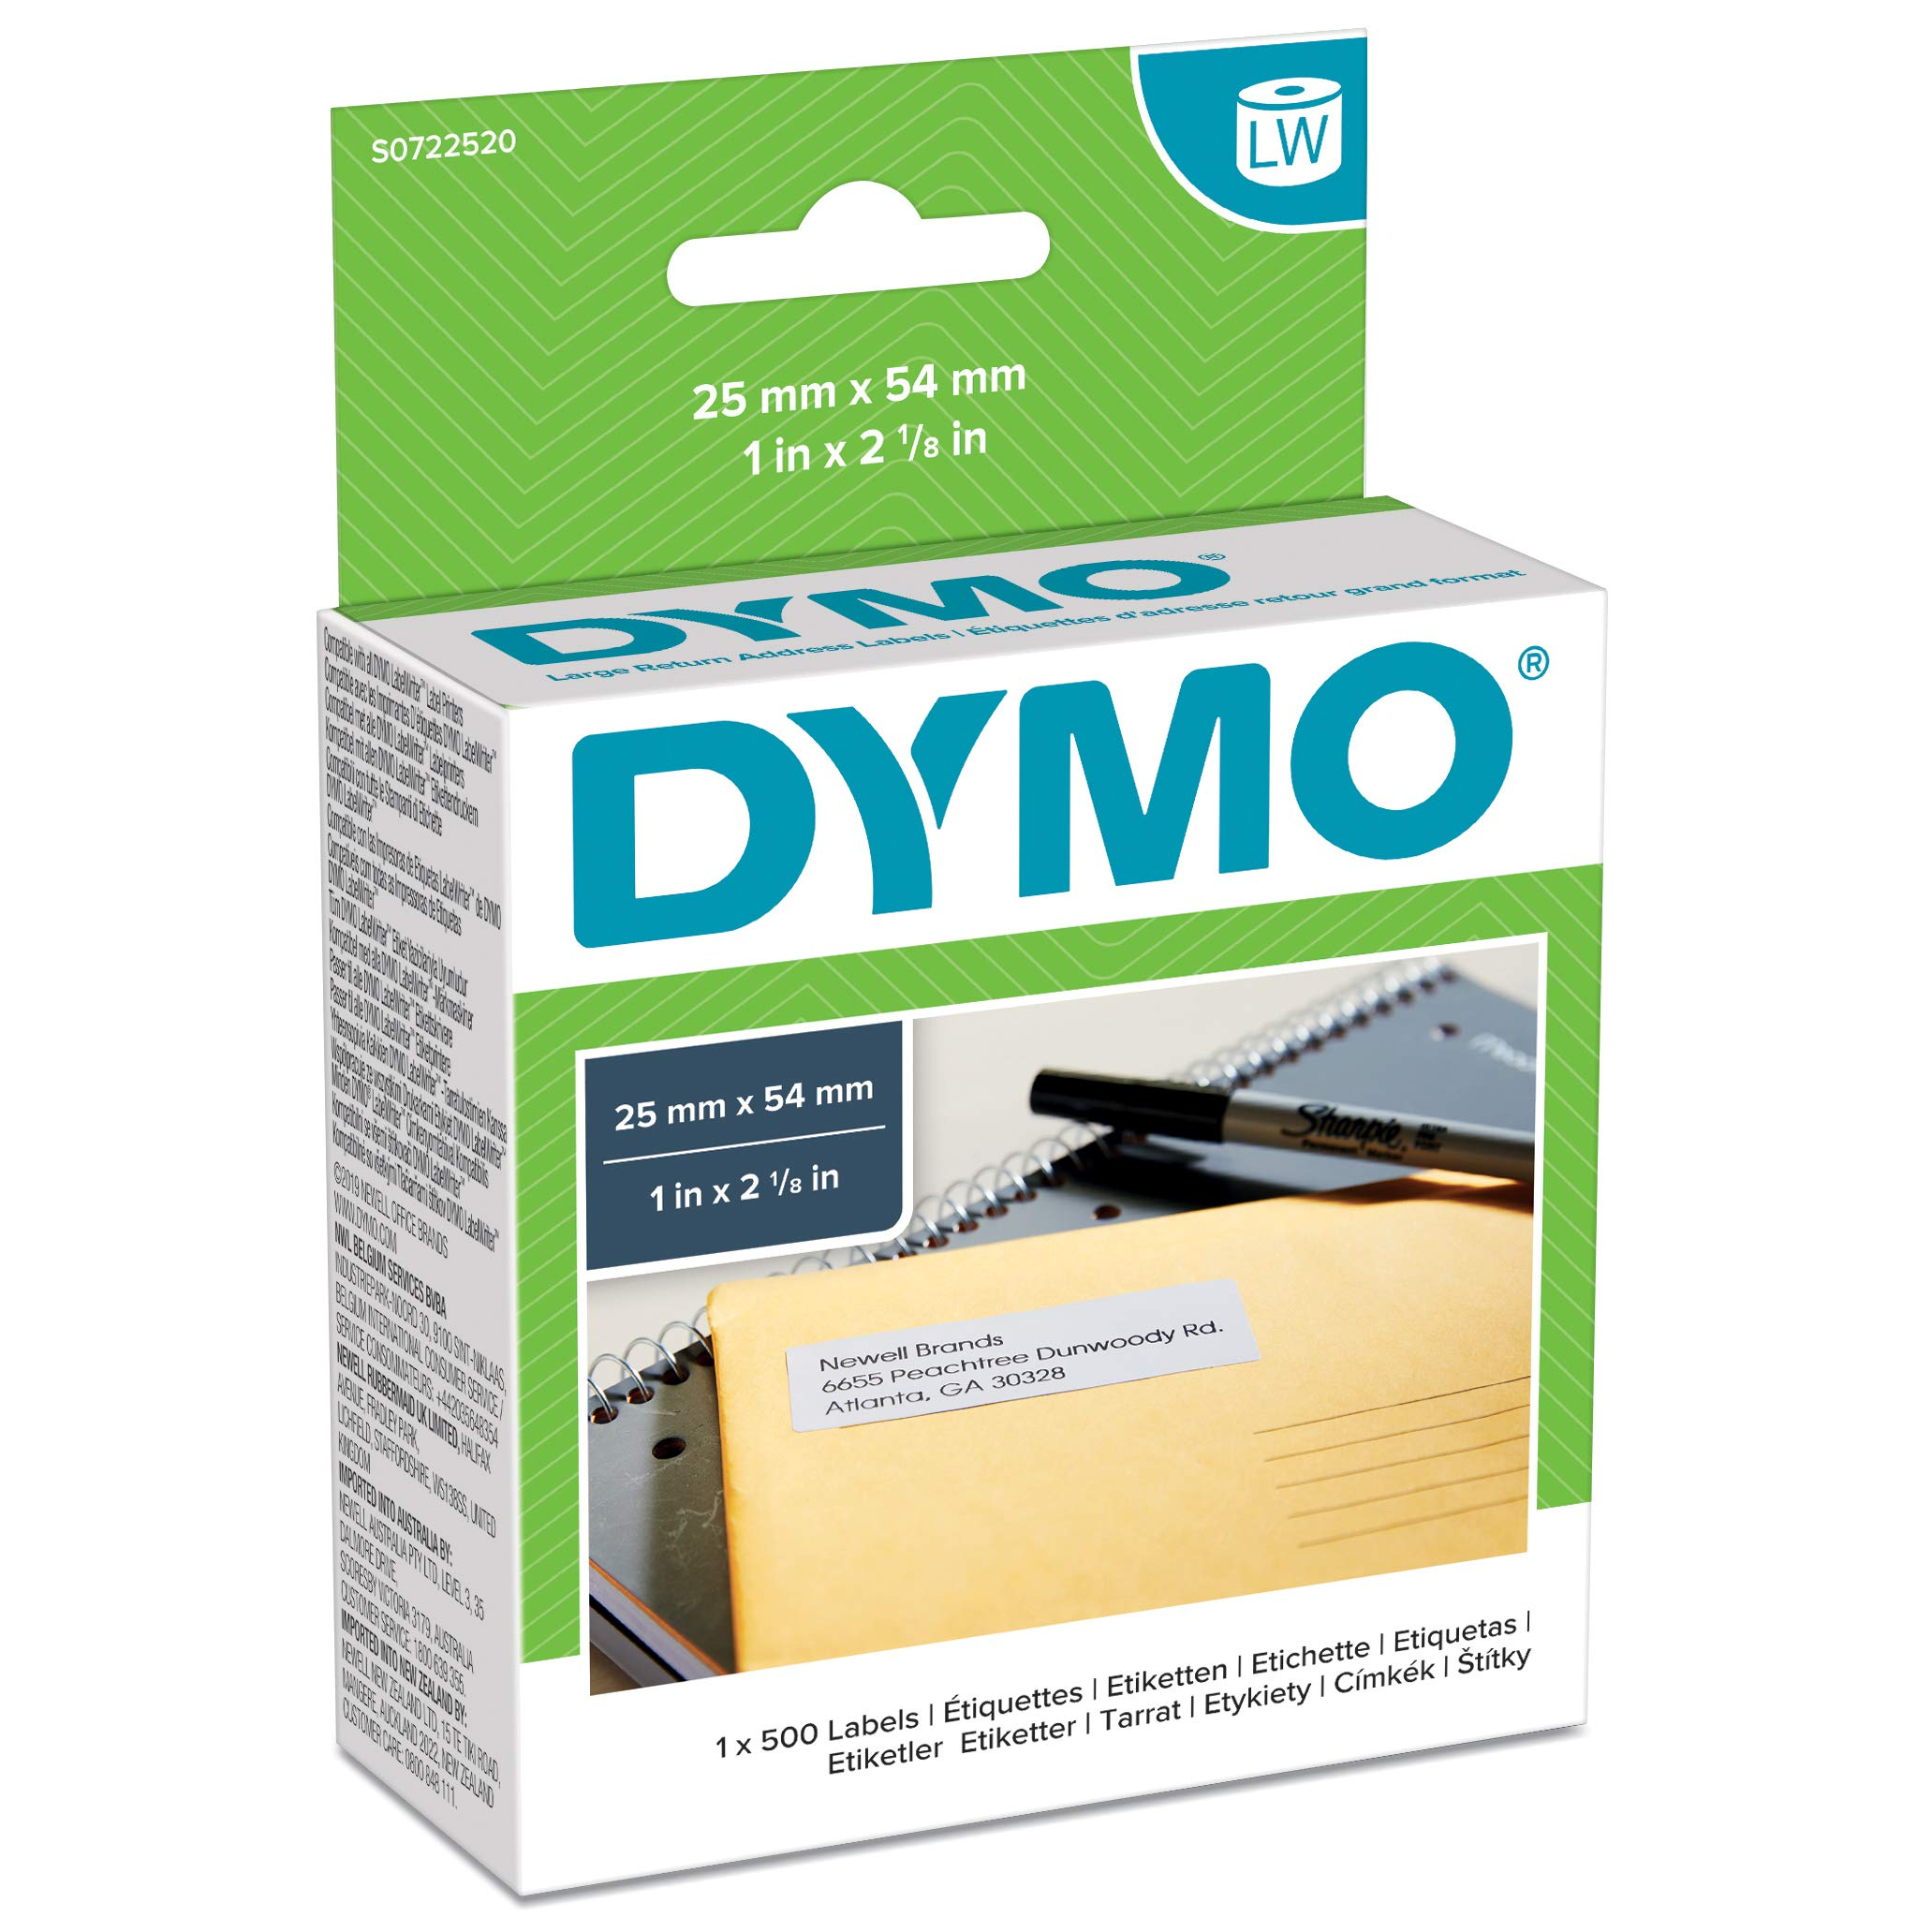 DYMO LW Large Return Address Labels, 25 mm x 54 mm, Roll of 500 Easy-Peel Labels, Self-Adhesive, for LabelWriter Label Makers, Authentic